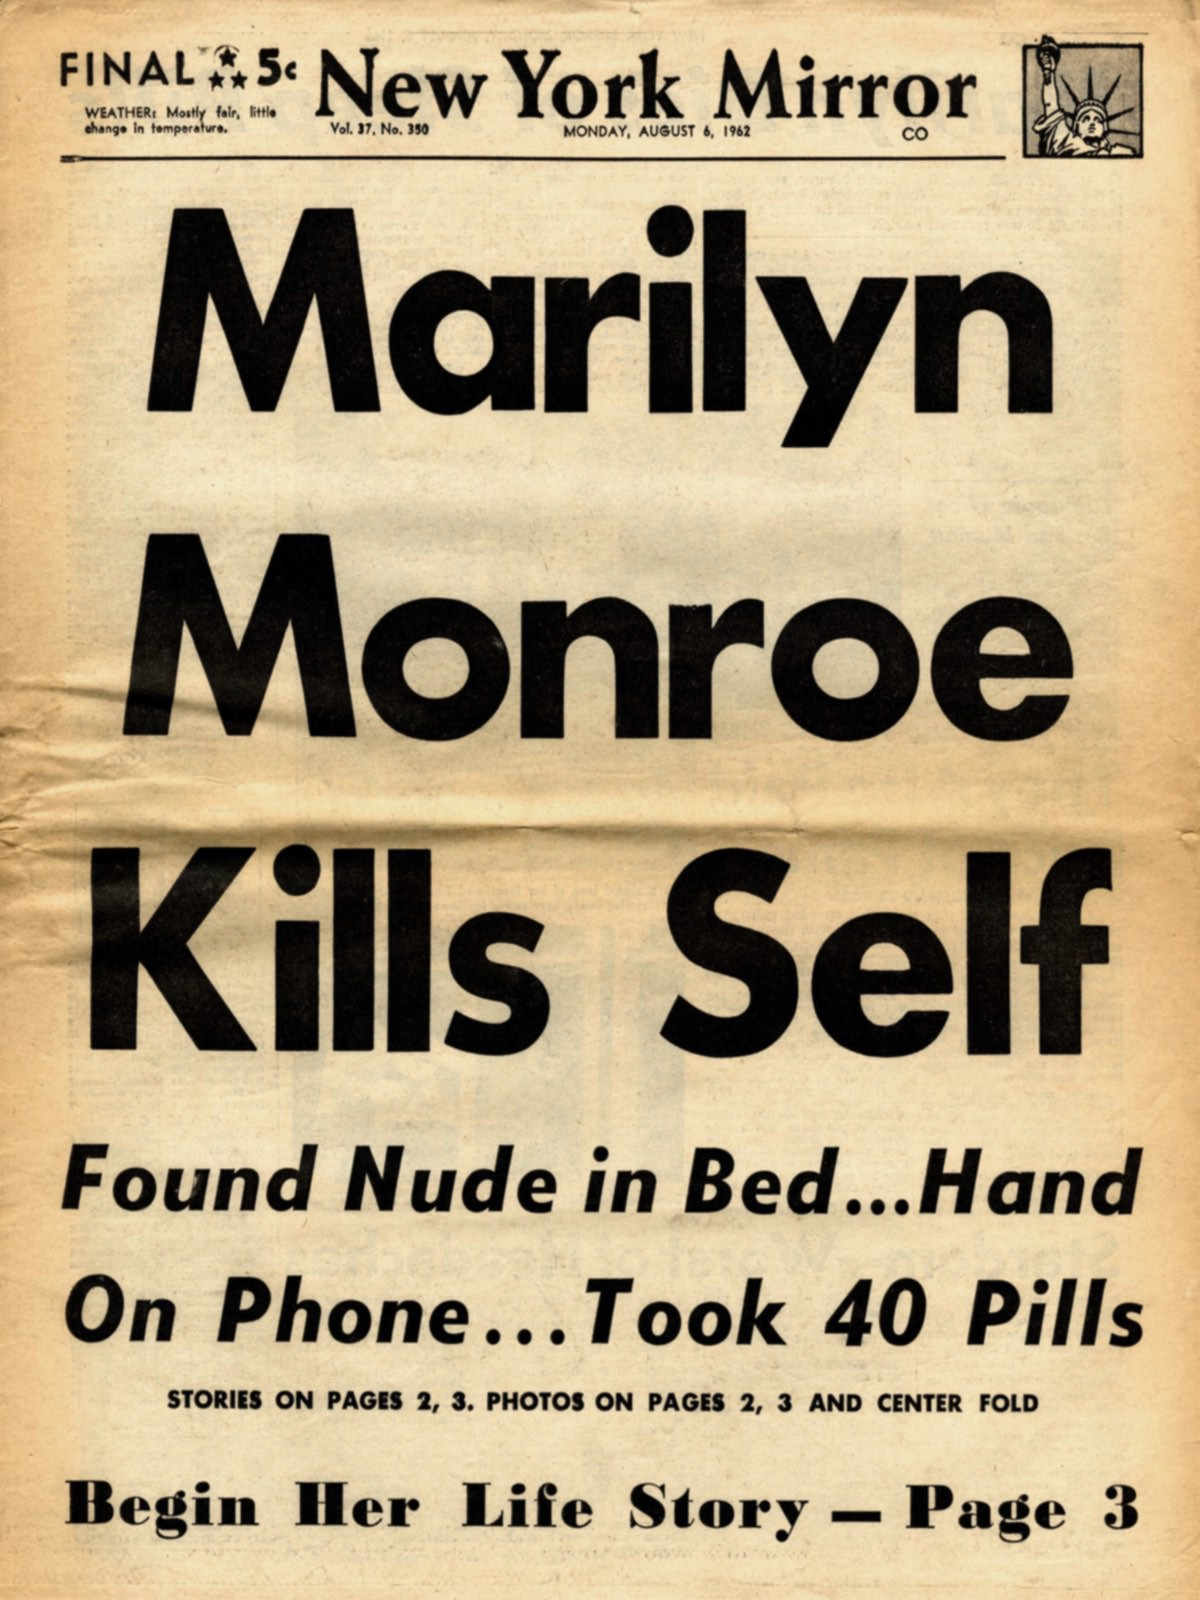 Lurid newspaper headlines reported Monroe's death as suicide